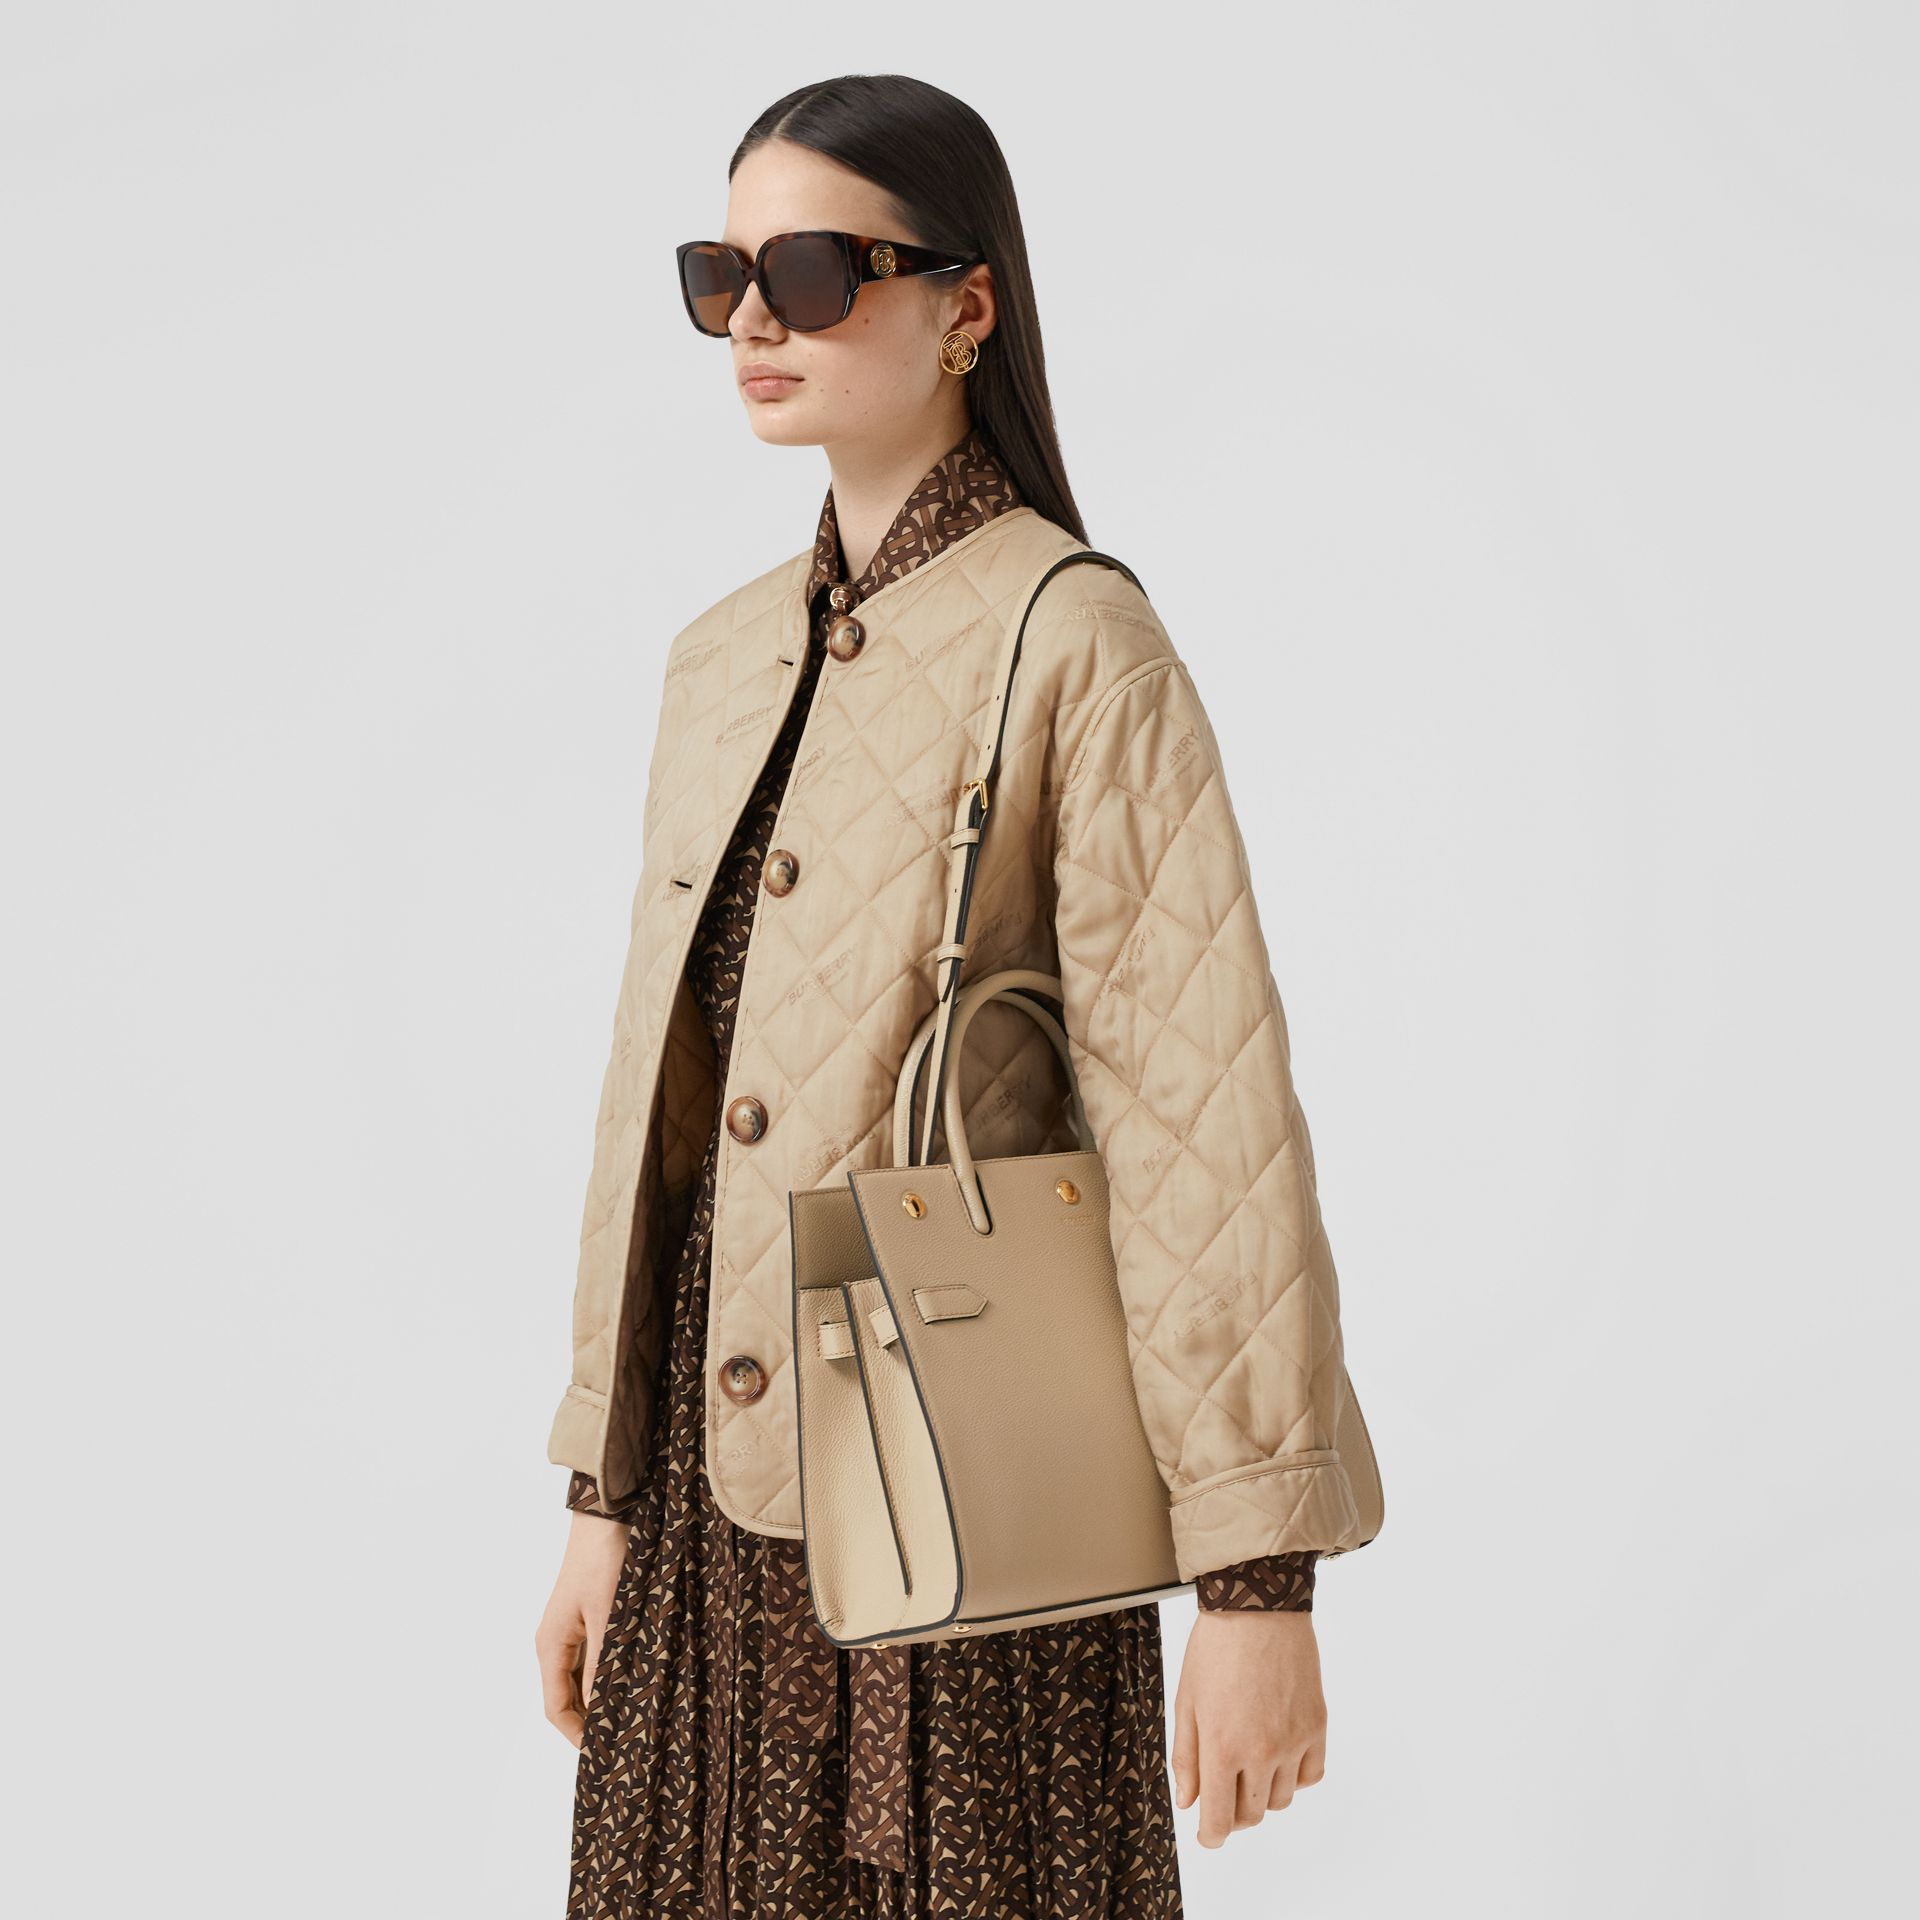 Small Leather Two-handle Title Bag in Light Beige - Women | Burberry - gallery image 2